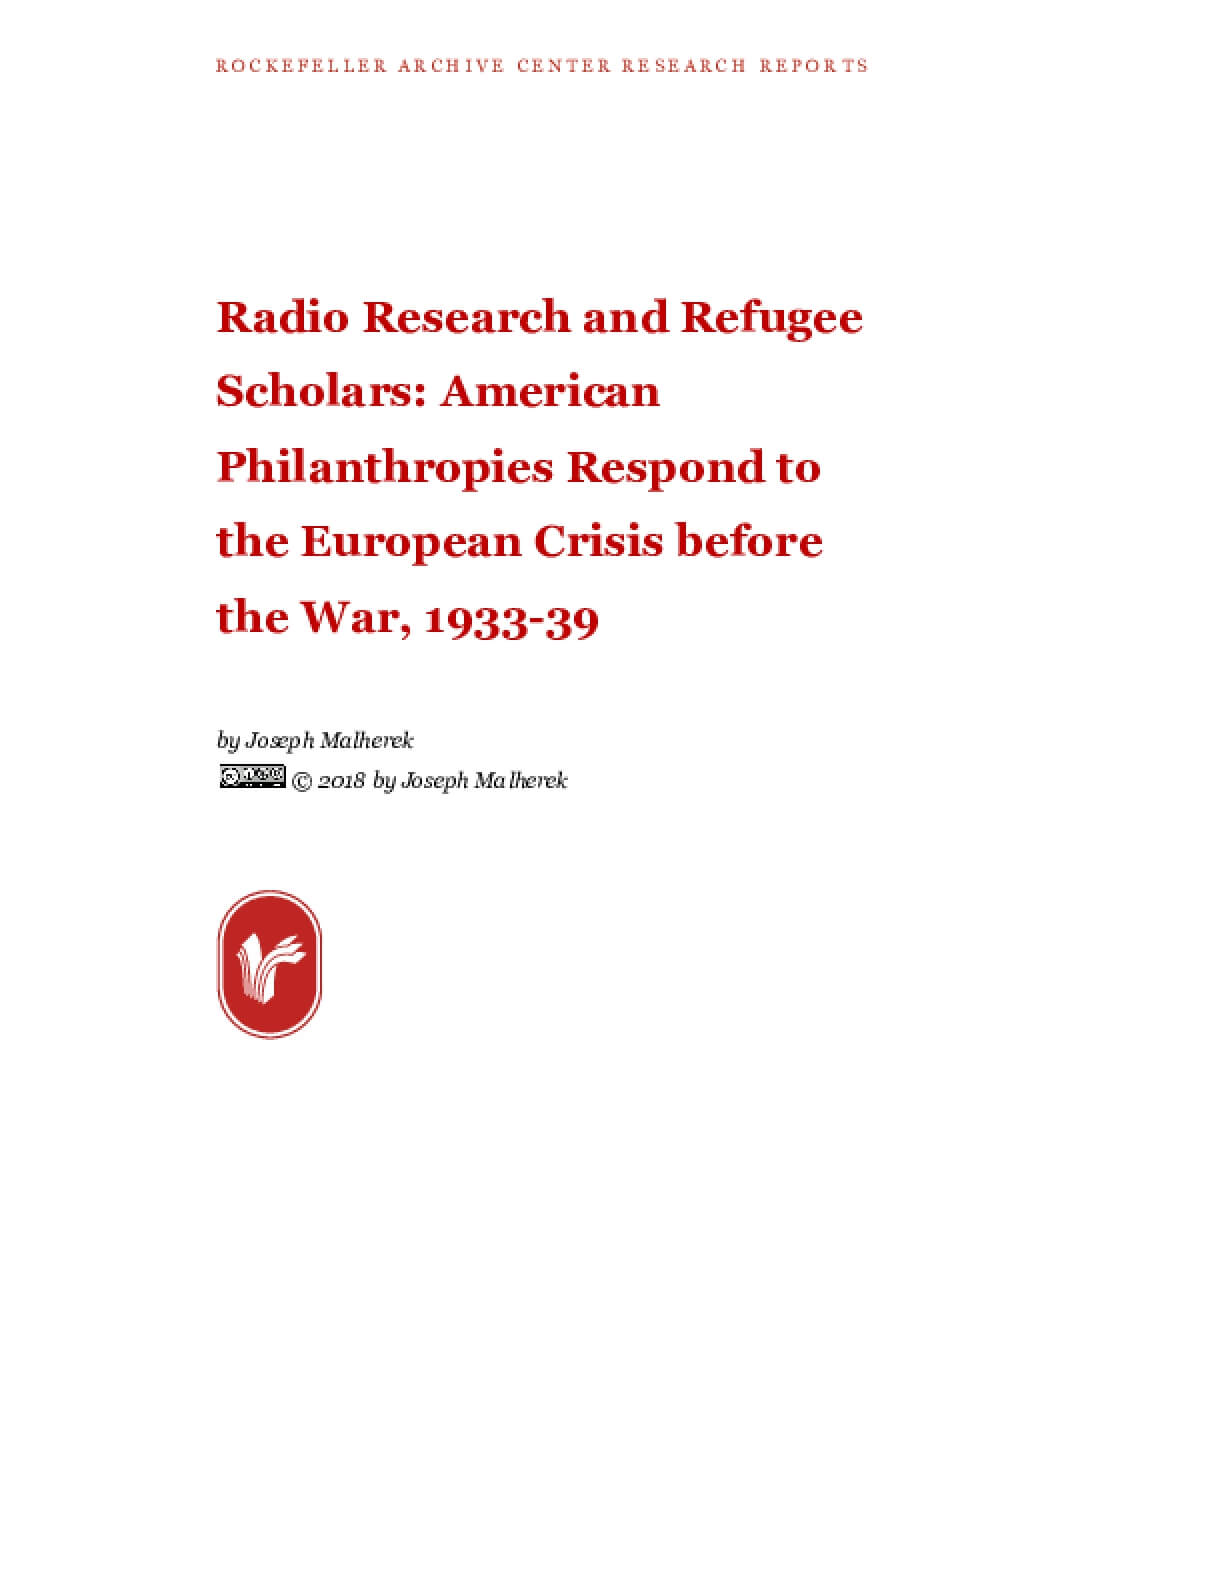 Radio Research and Refugee Scholars: American Philanthropies Respond to the European Crisis before the War, 1933-39